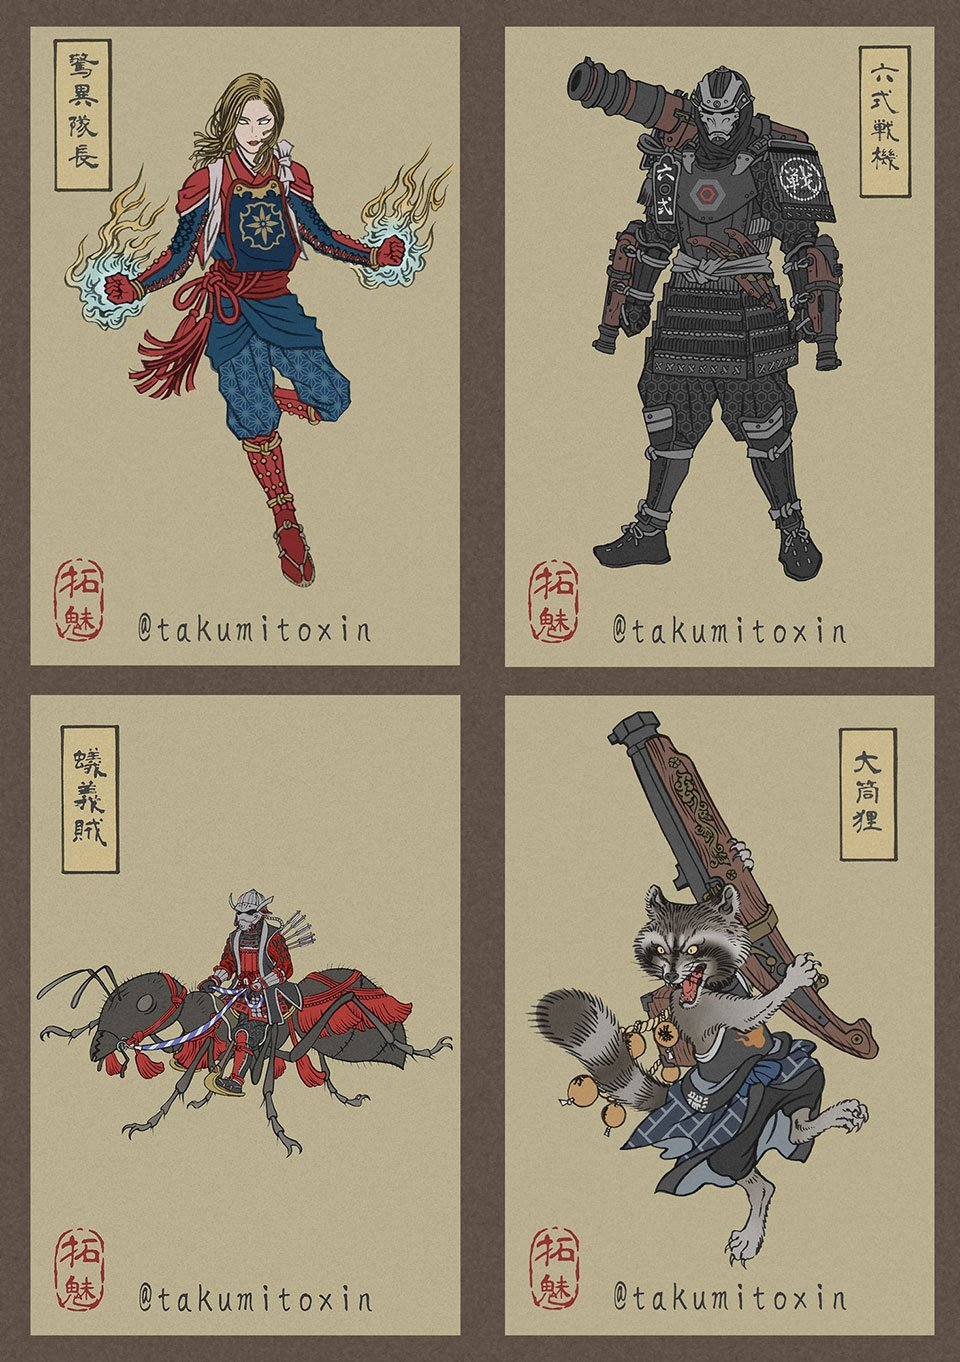 Avengers: Endgame Ukiyo-e Fan Art